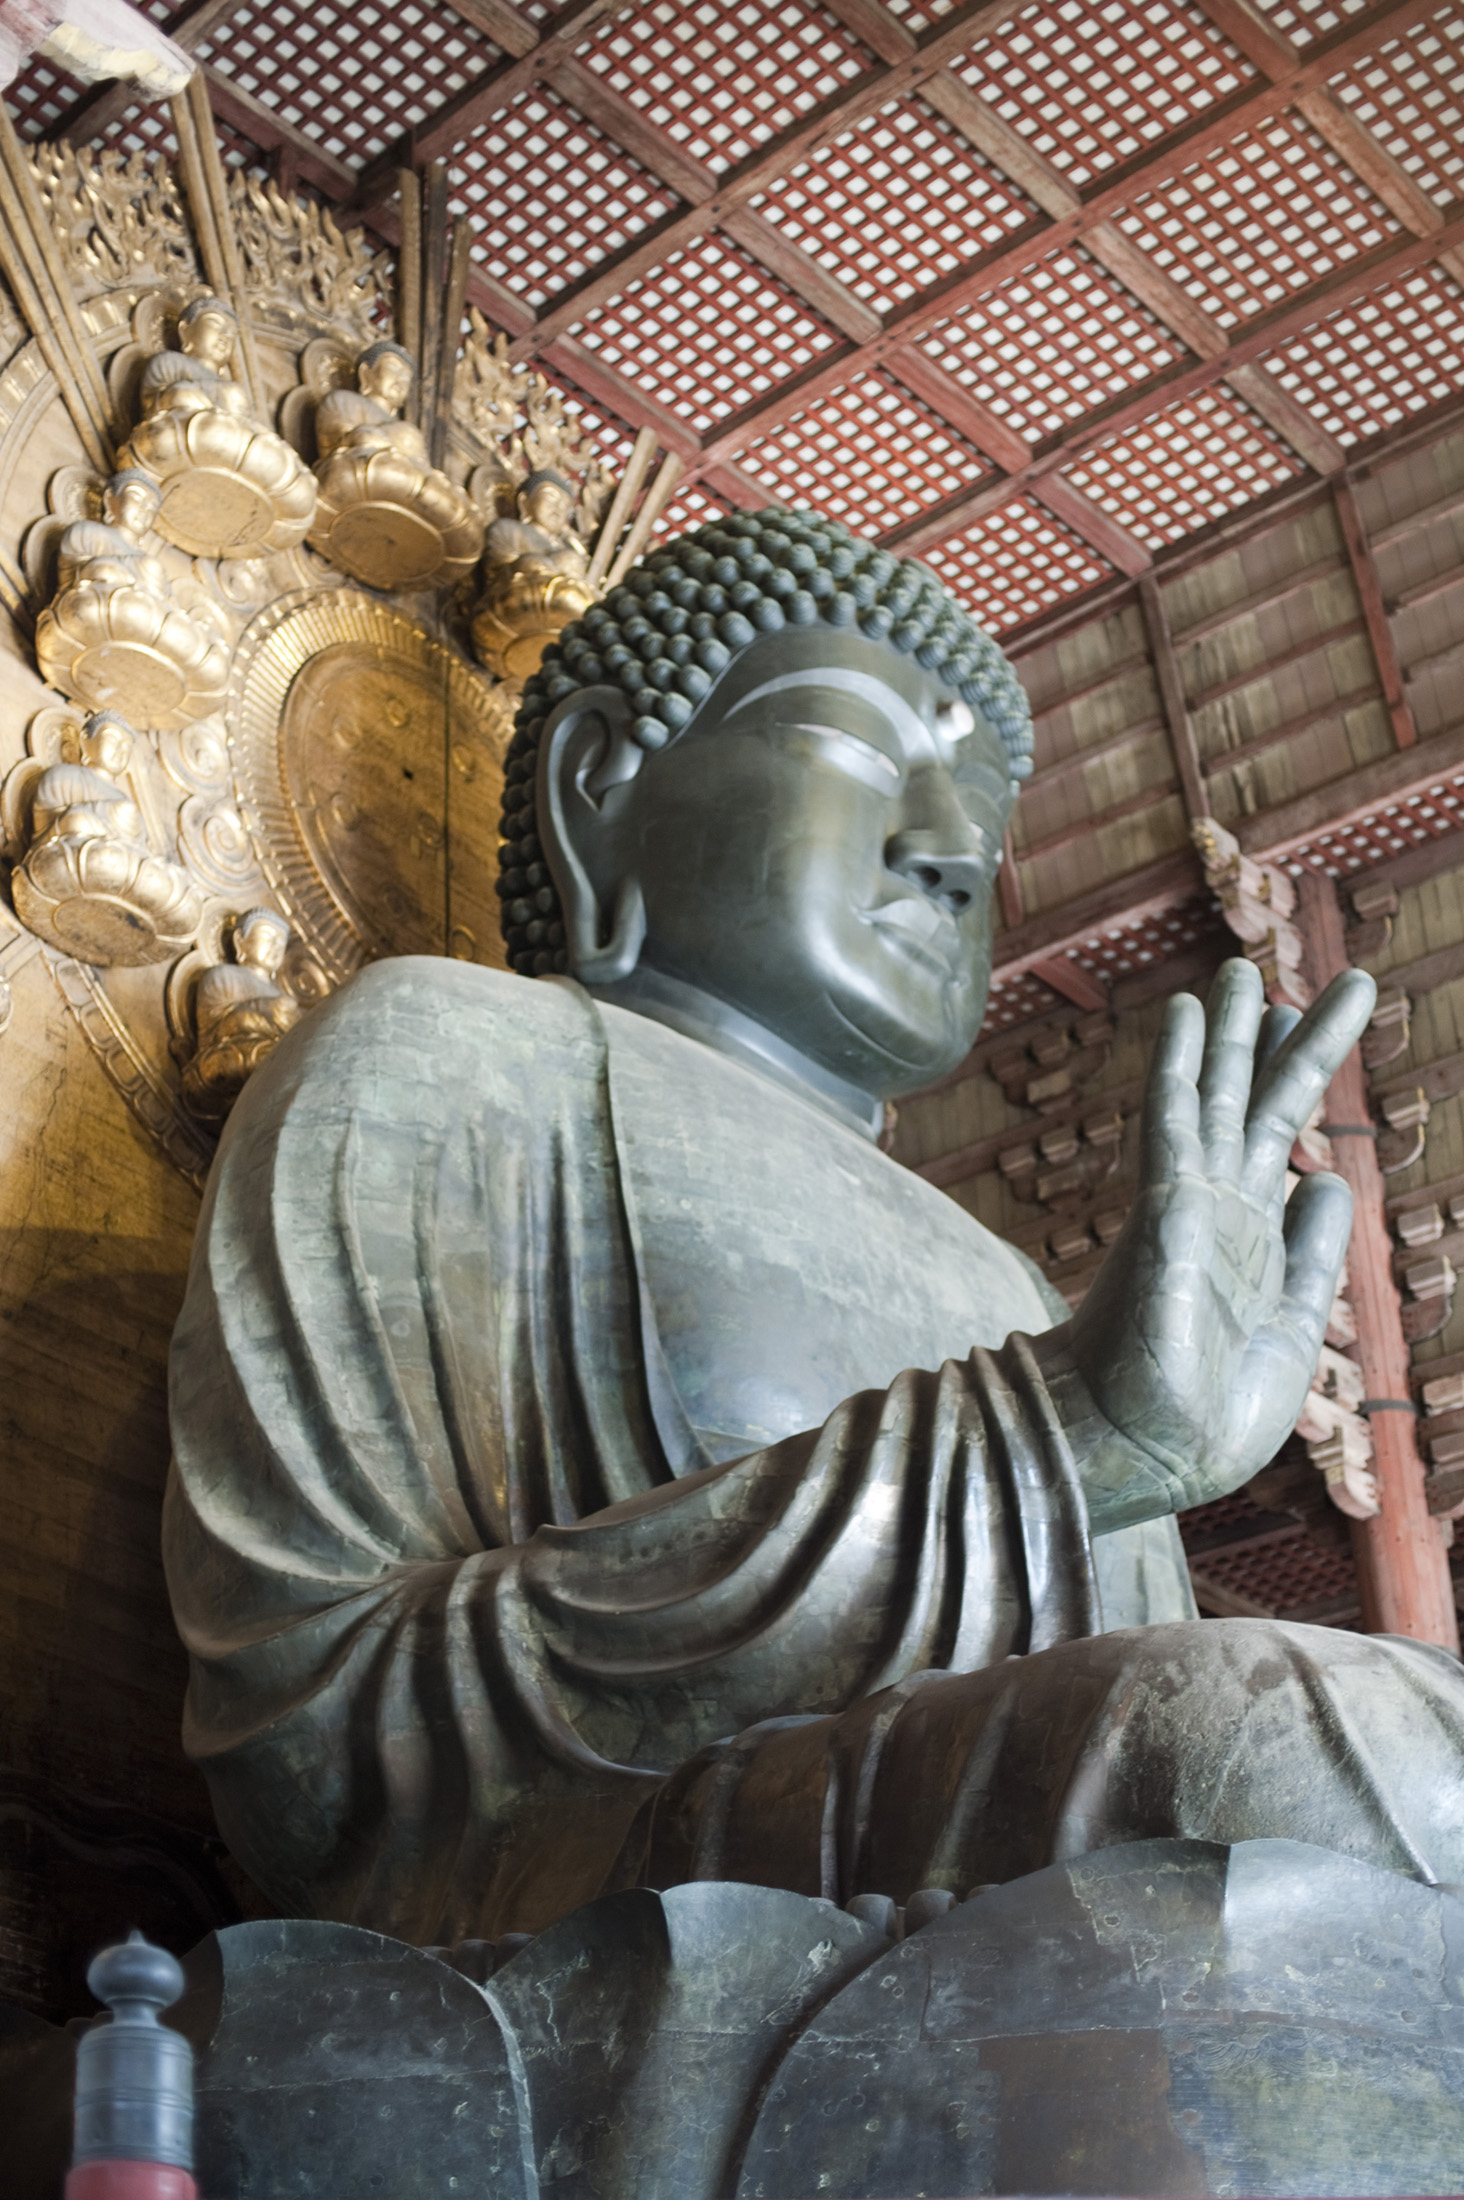 The Big Buddha of Todai-ji, Nara, Japan